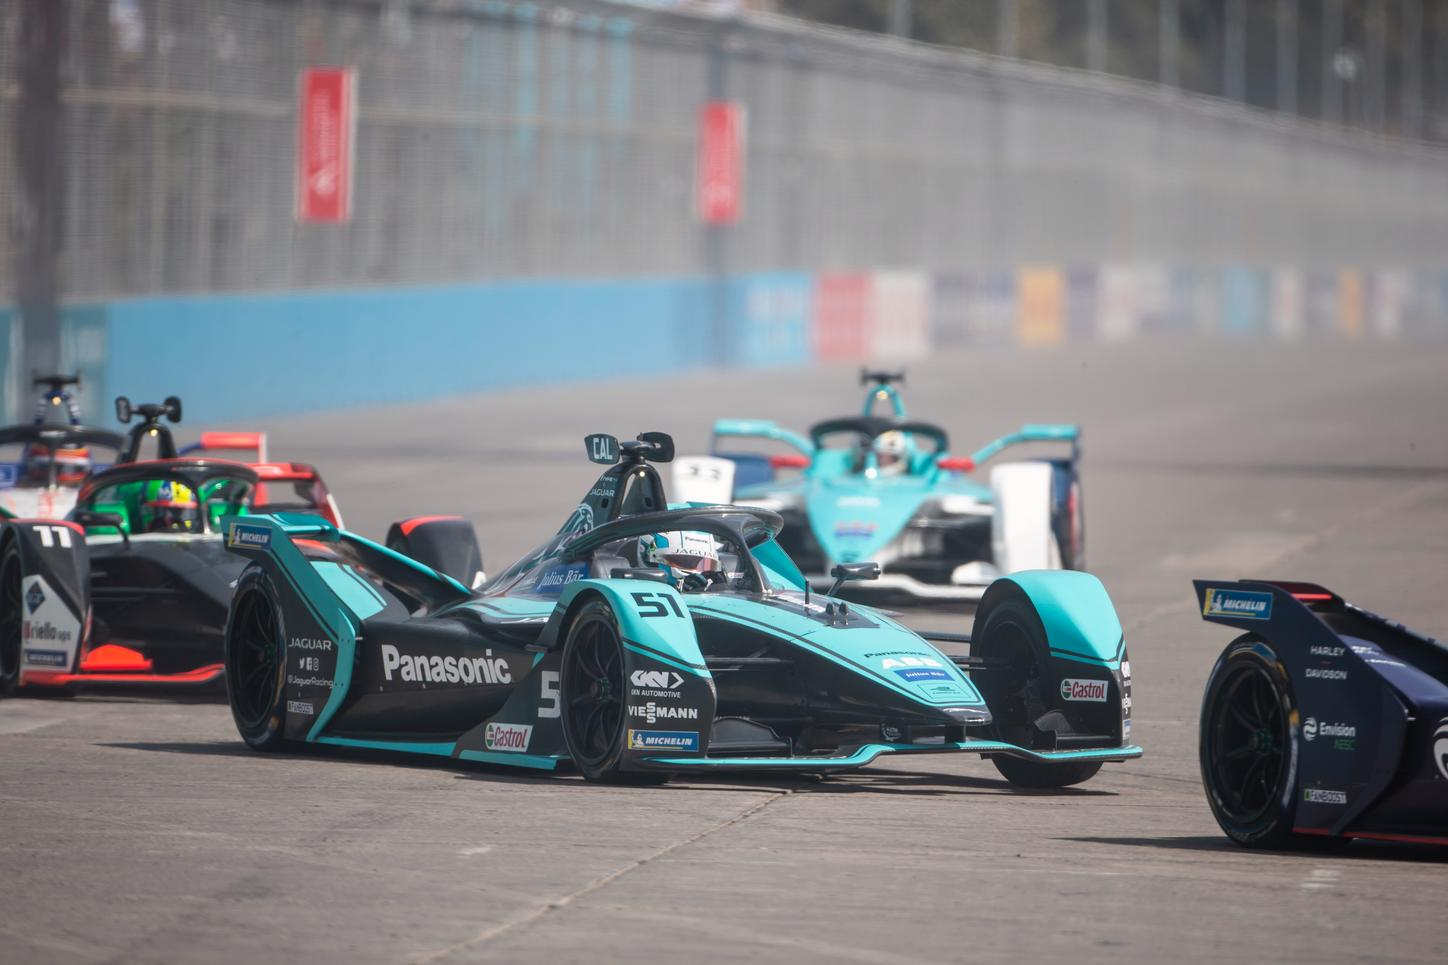 The picture shows Viessmann with Panasonic Jaguar Racing in a race.